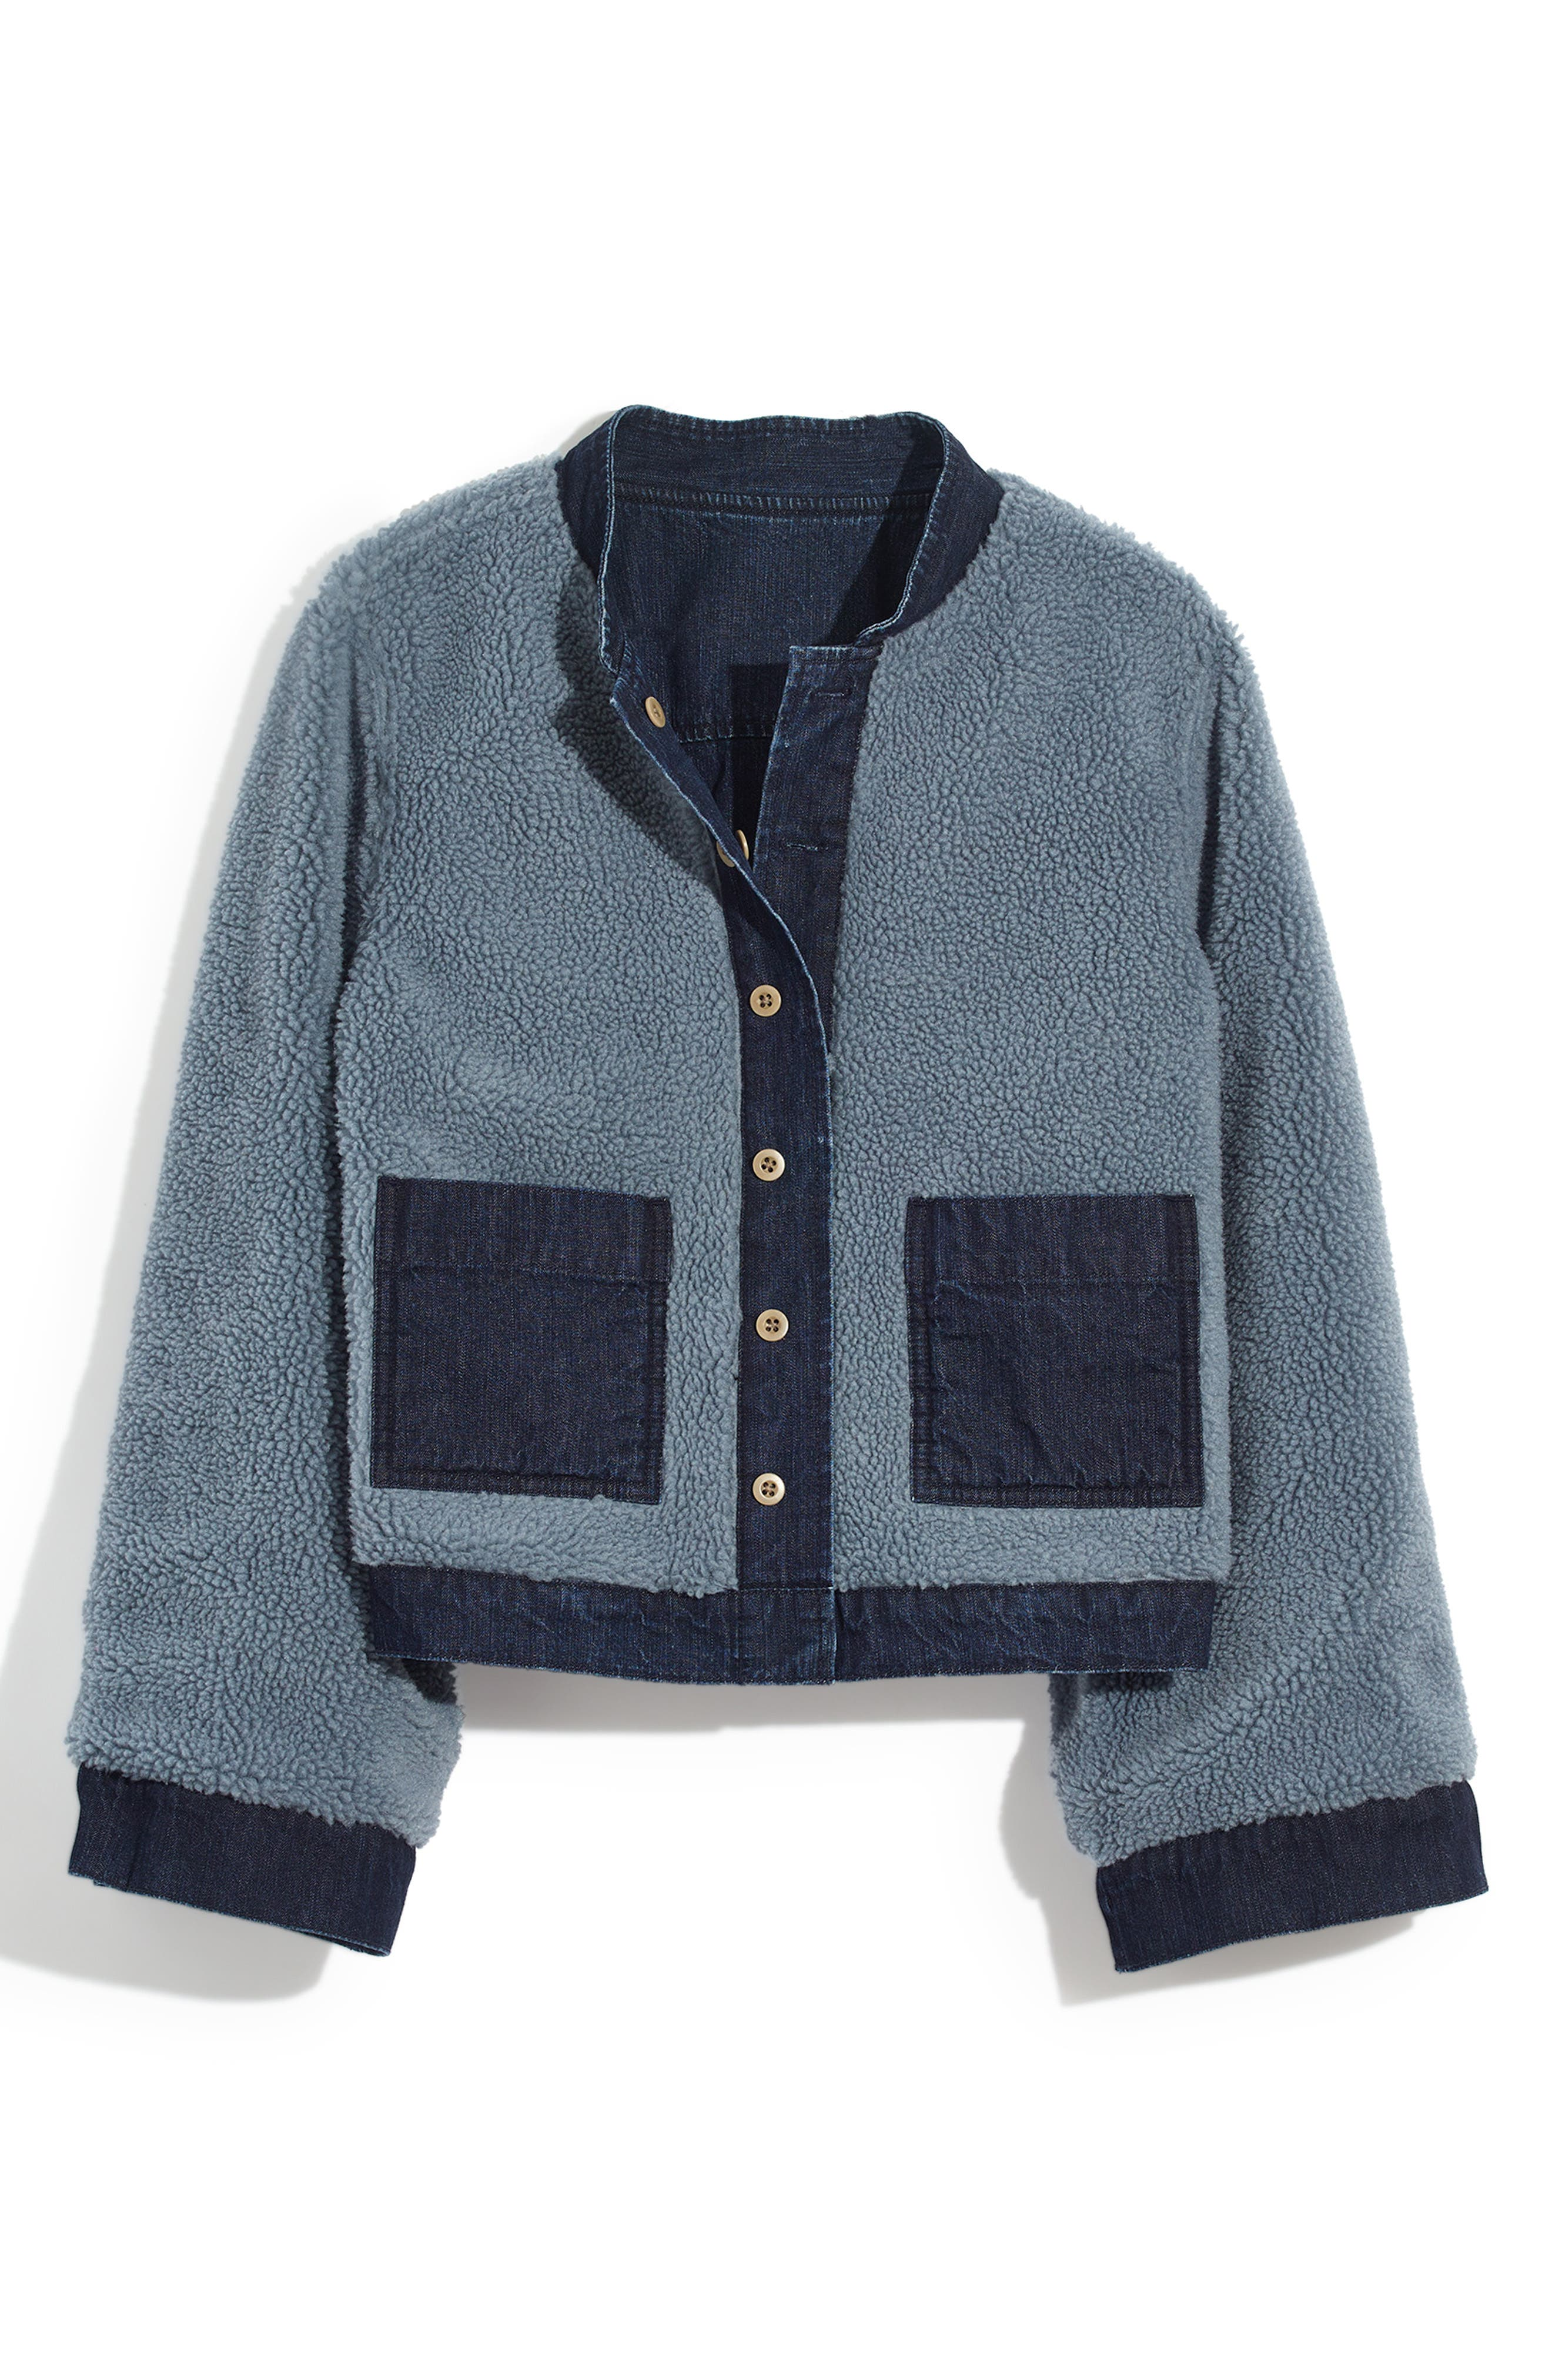 MADEWELL, Reversible Fleece Jean Jacket, Alternate thumbnail 6, color, 400